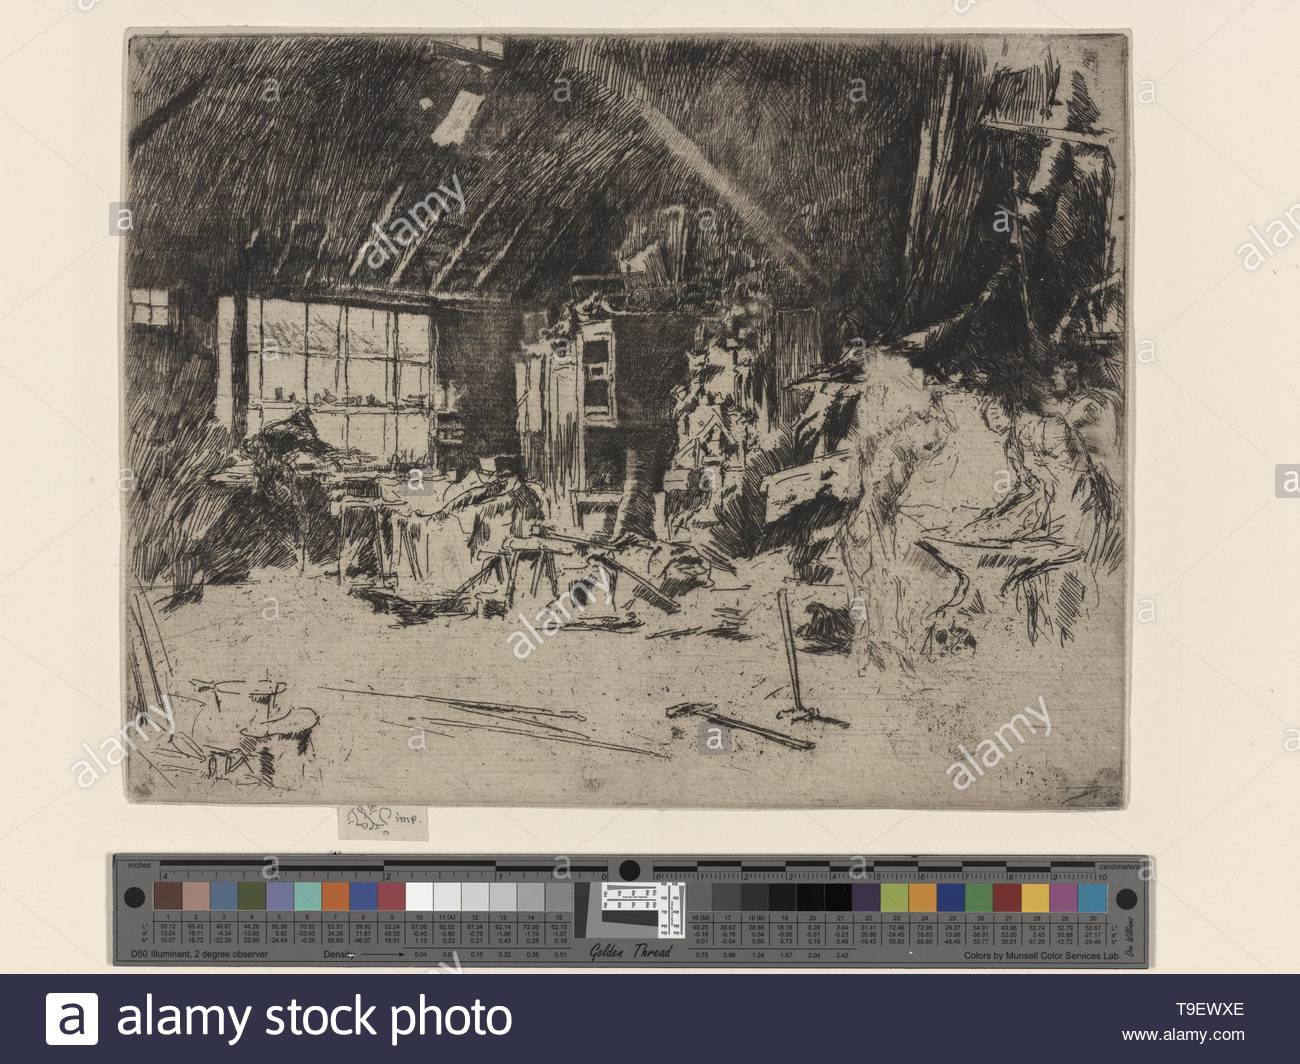 Whistler,JamesMcNeill(1834-1903)-The smithy - Stock Image